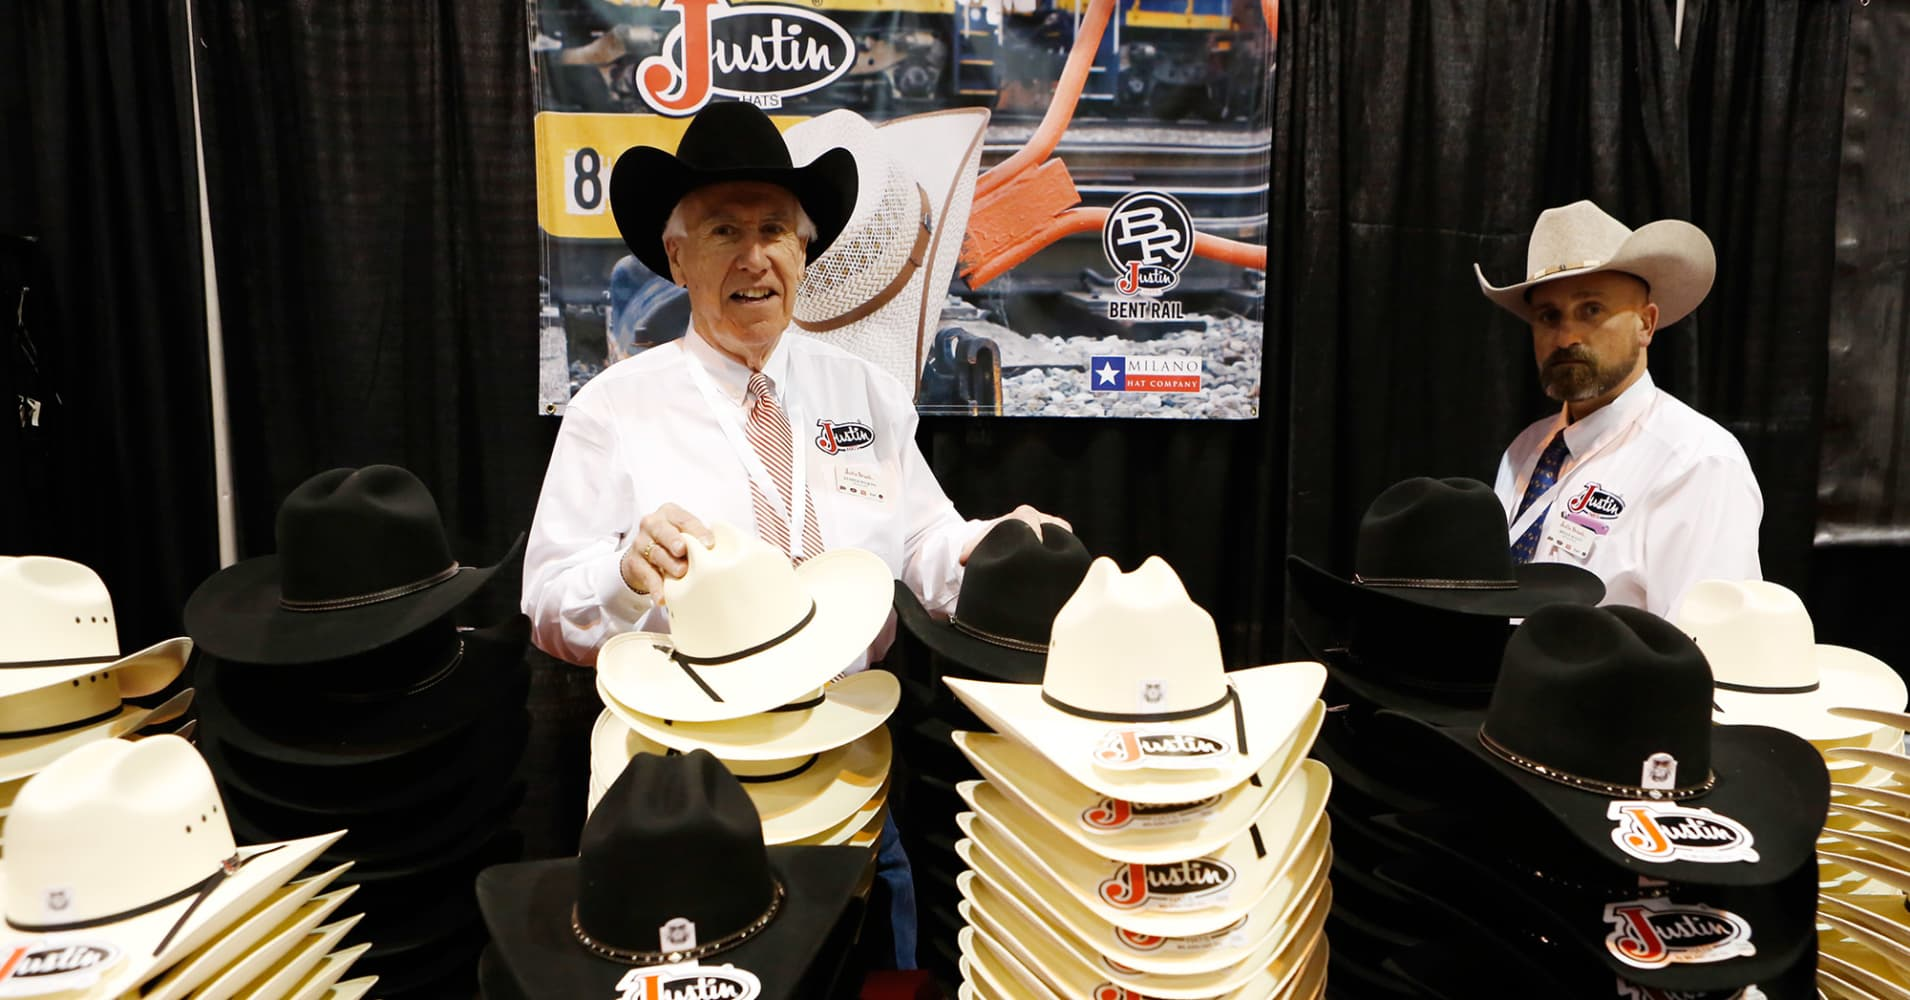 Justin hats on display at the 2017 Berkshire Hathaway Annual Meeting in Omaha NE